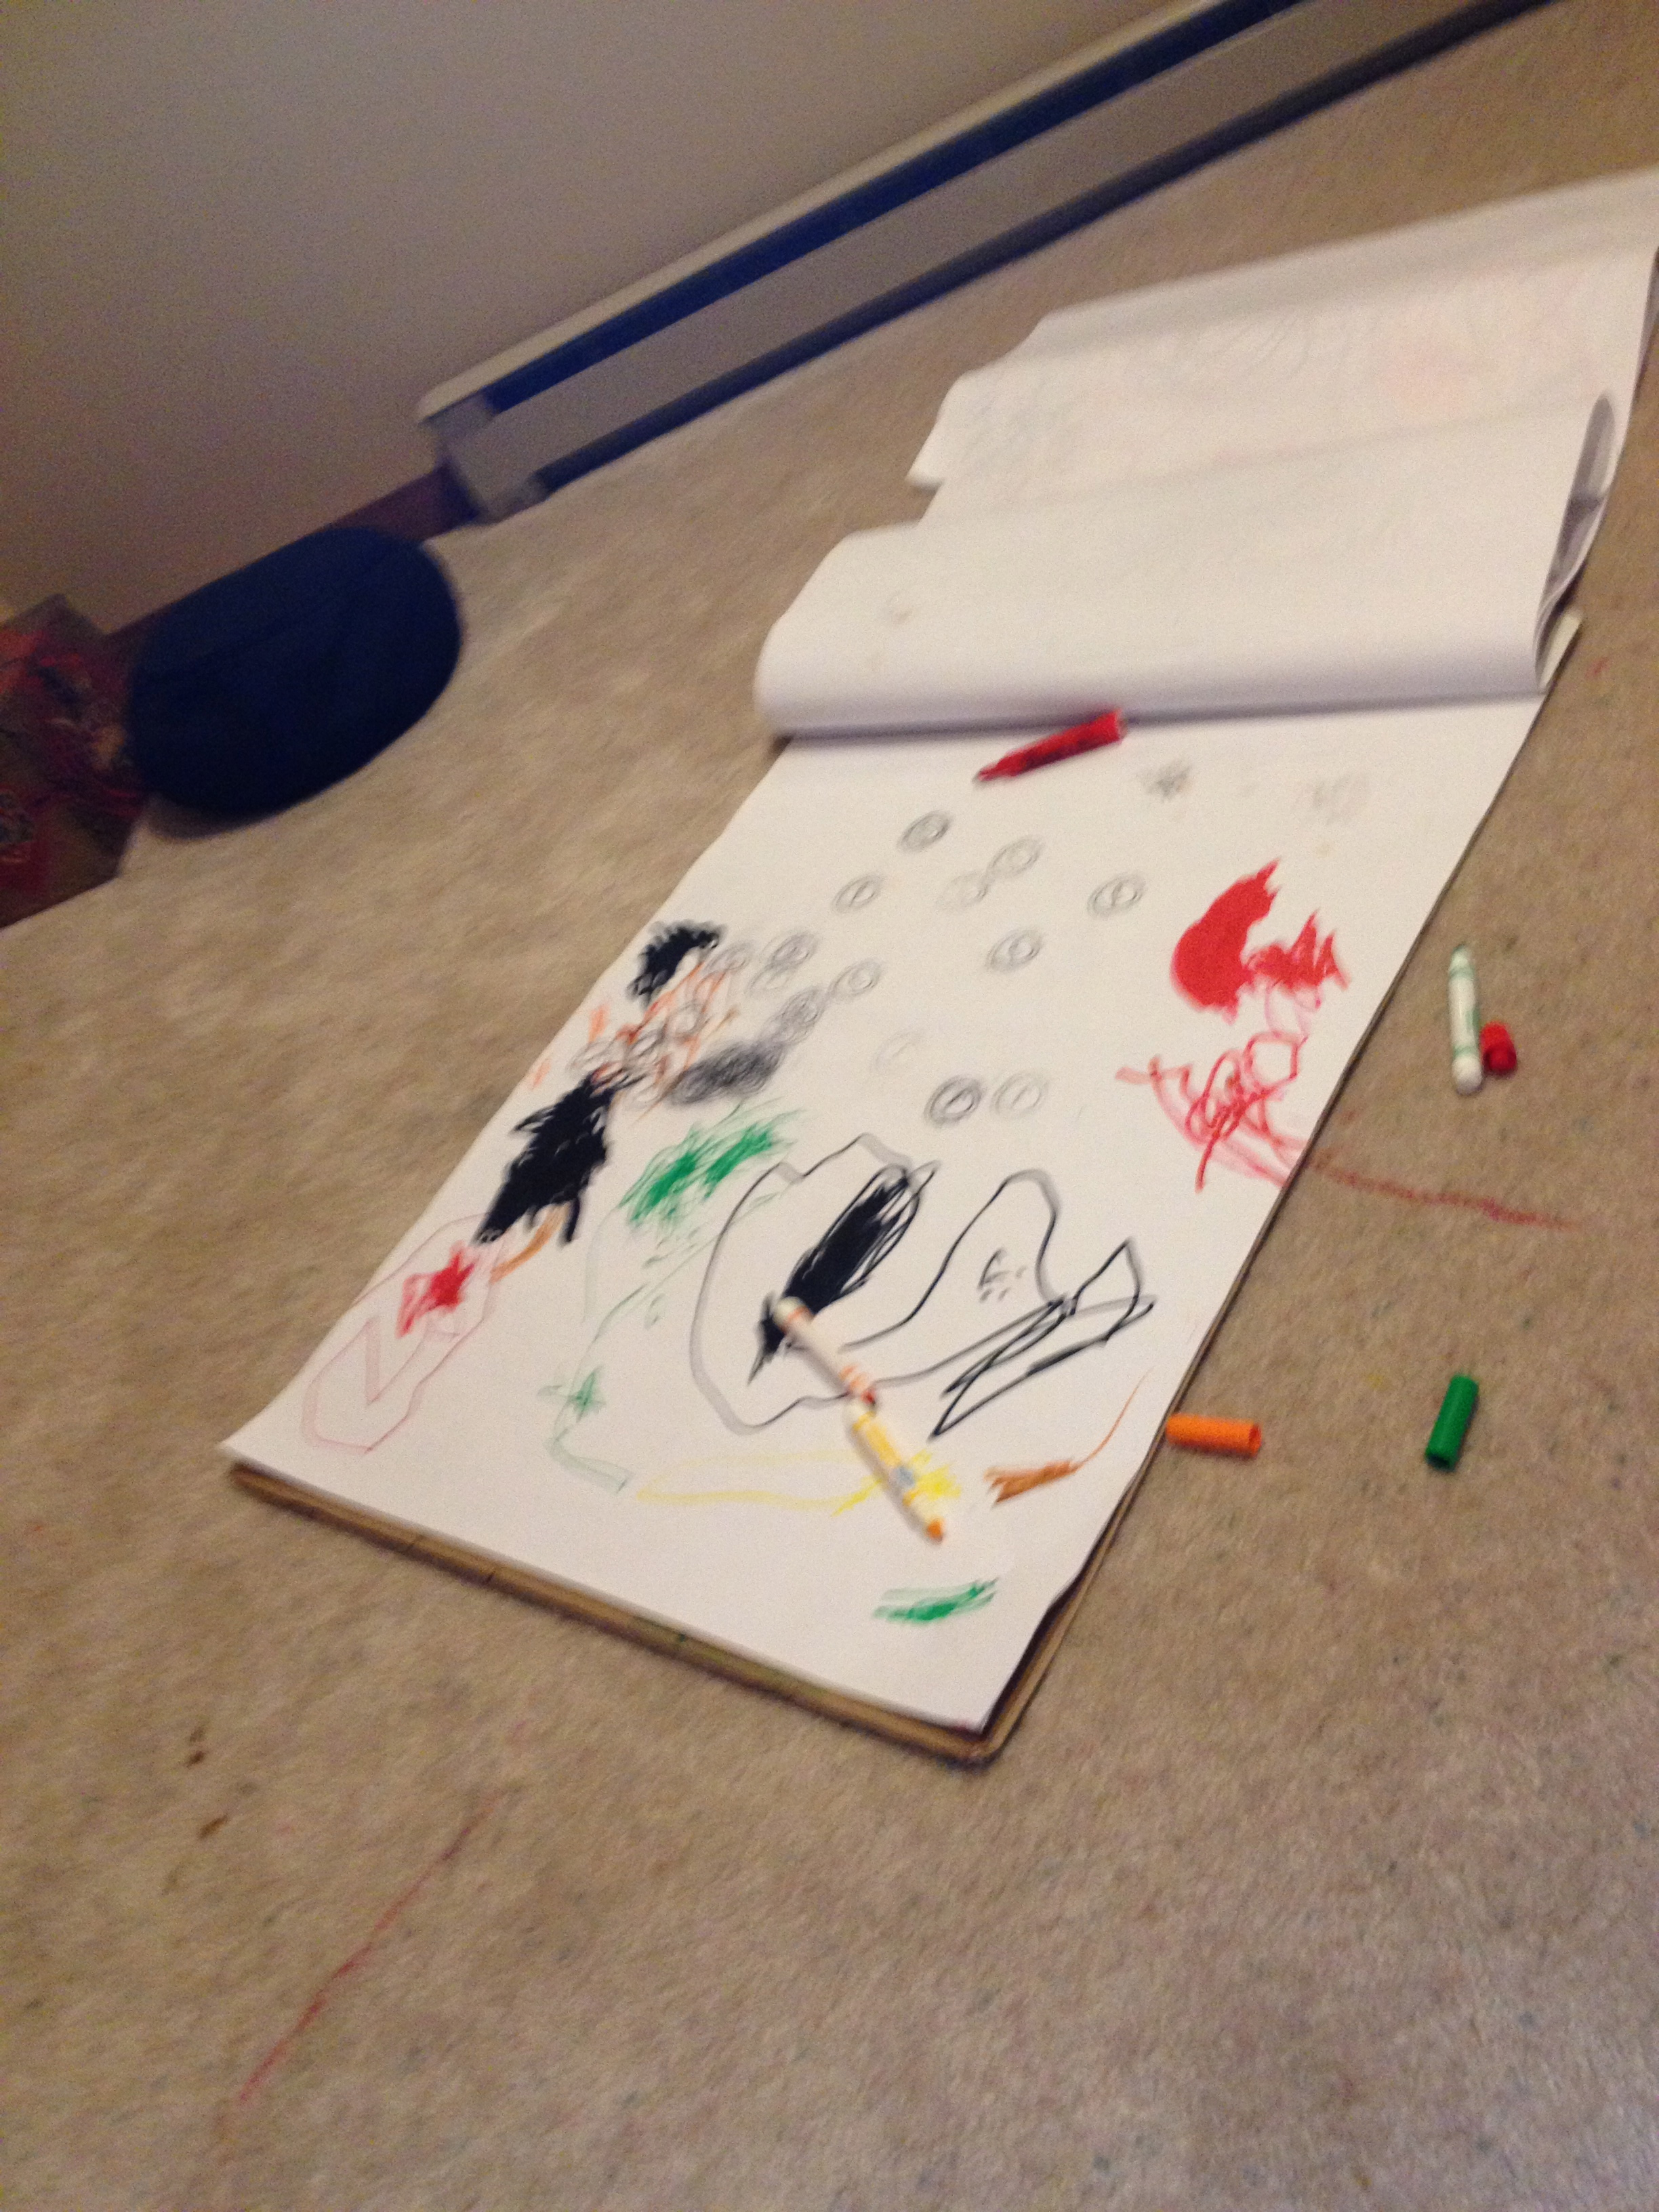 My kids loved coloring all over my giant flipchart paper (and the carpet) in my former office space.